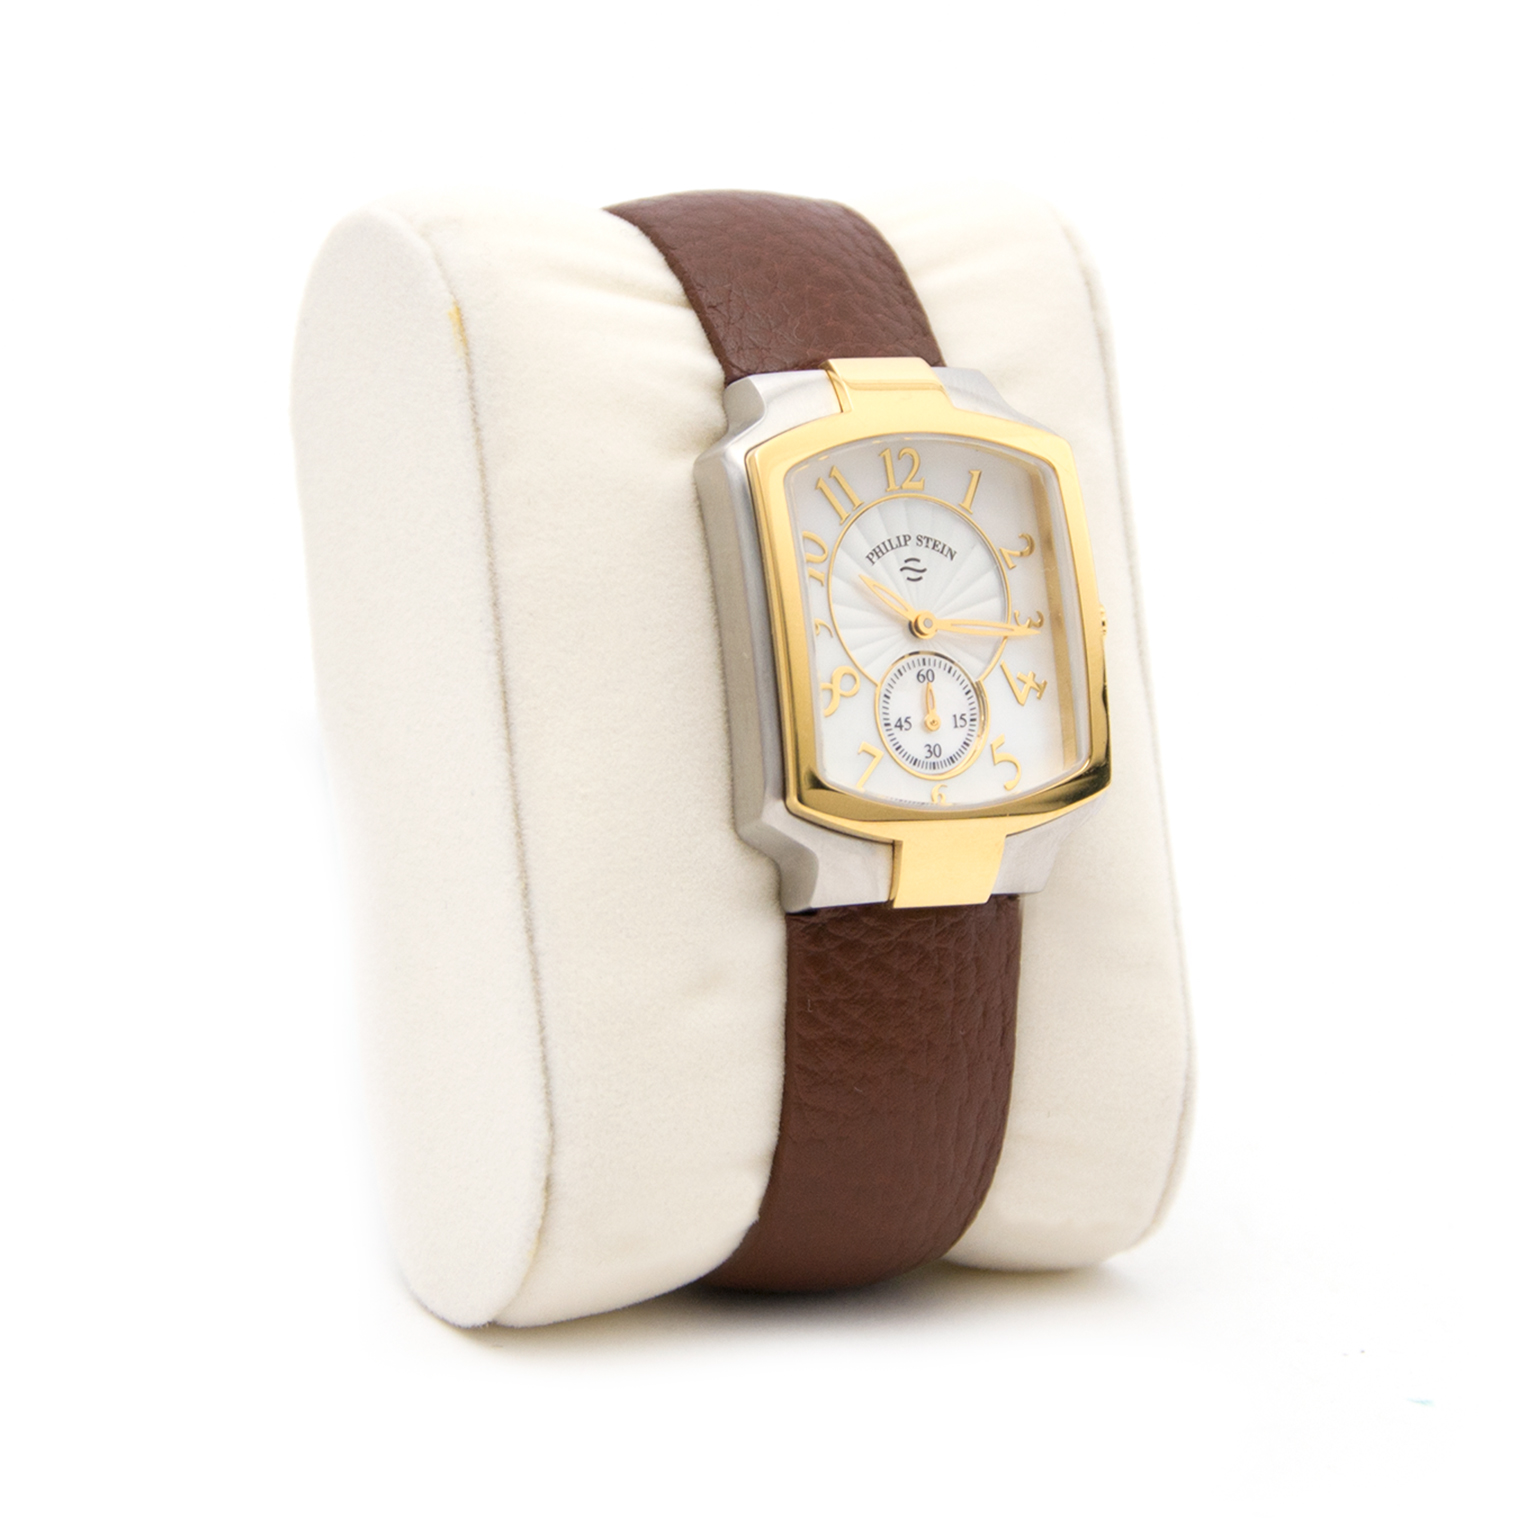 Real Philip Stein watch second-hand in excellent condition on www.labellov.com. Buy without any risks.